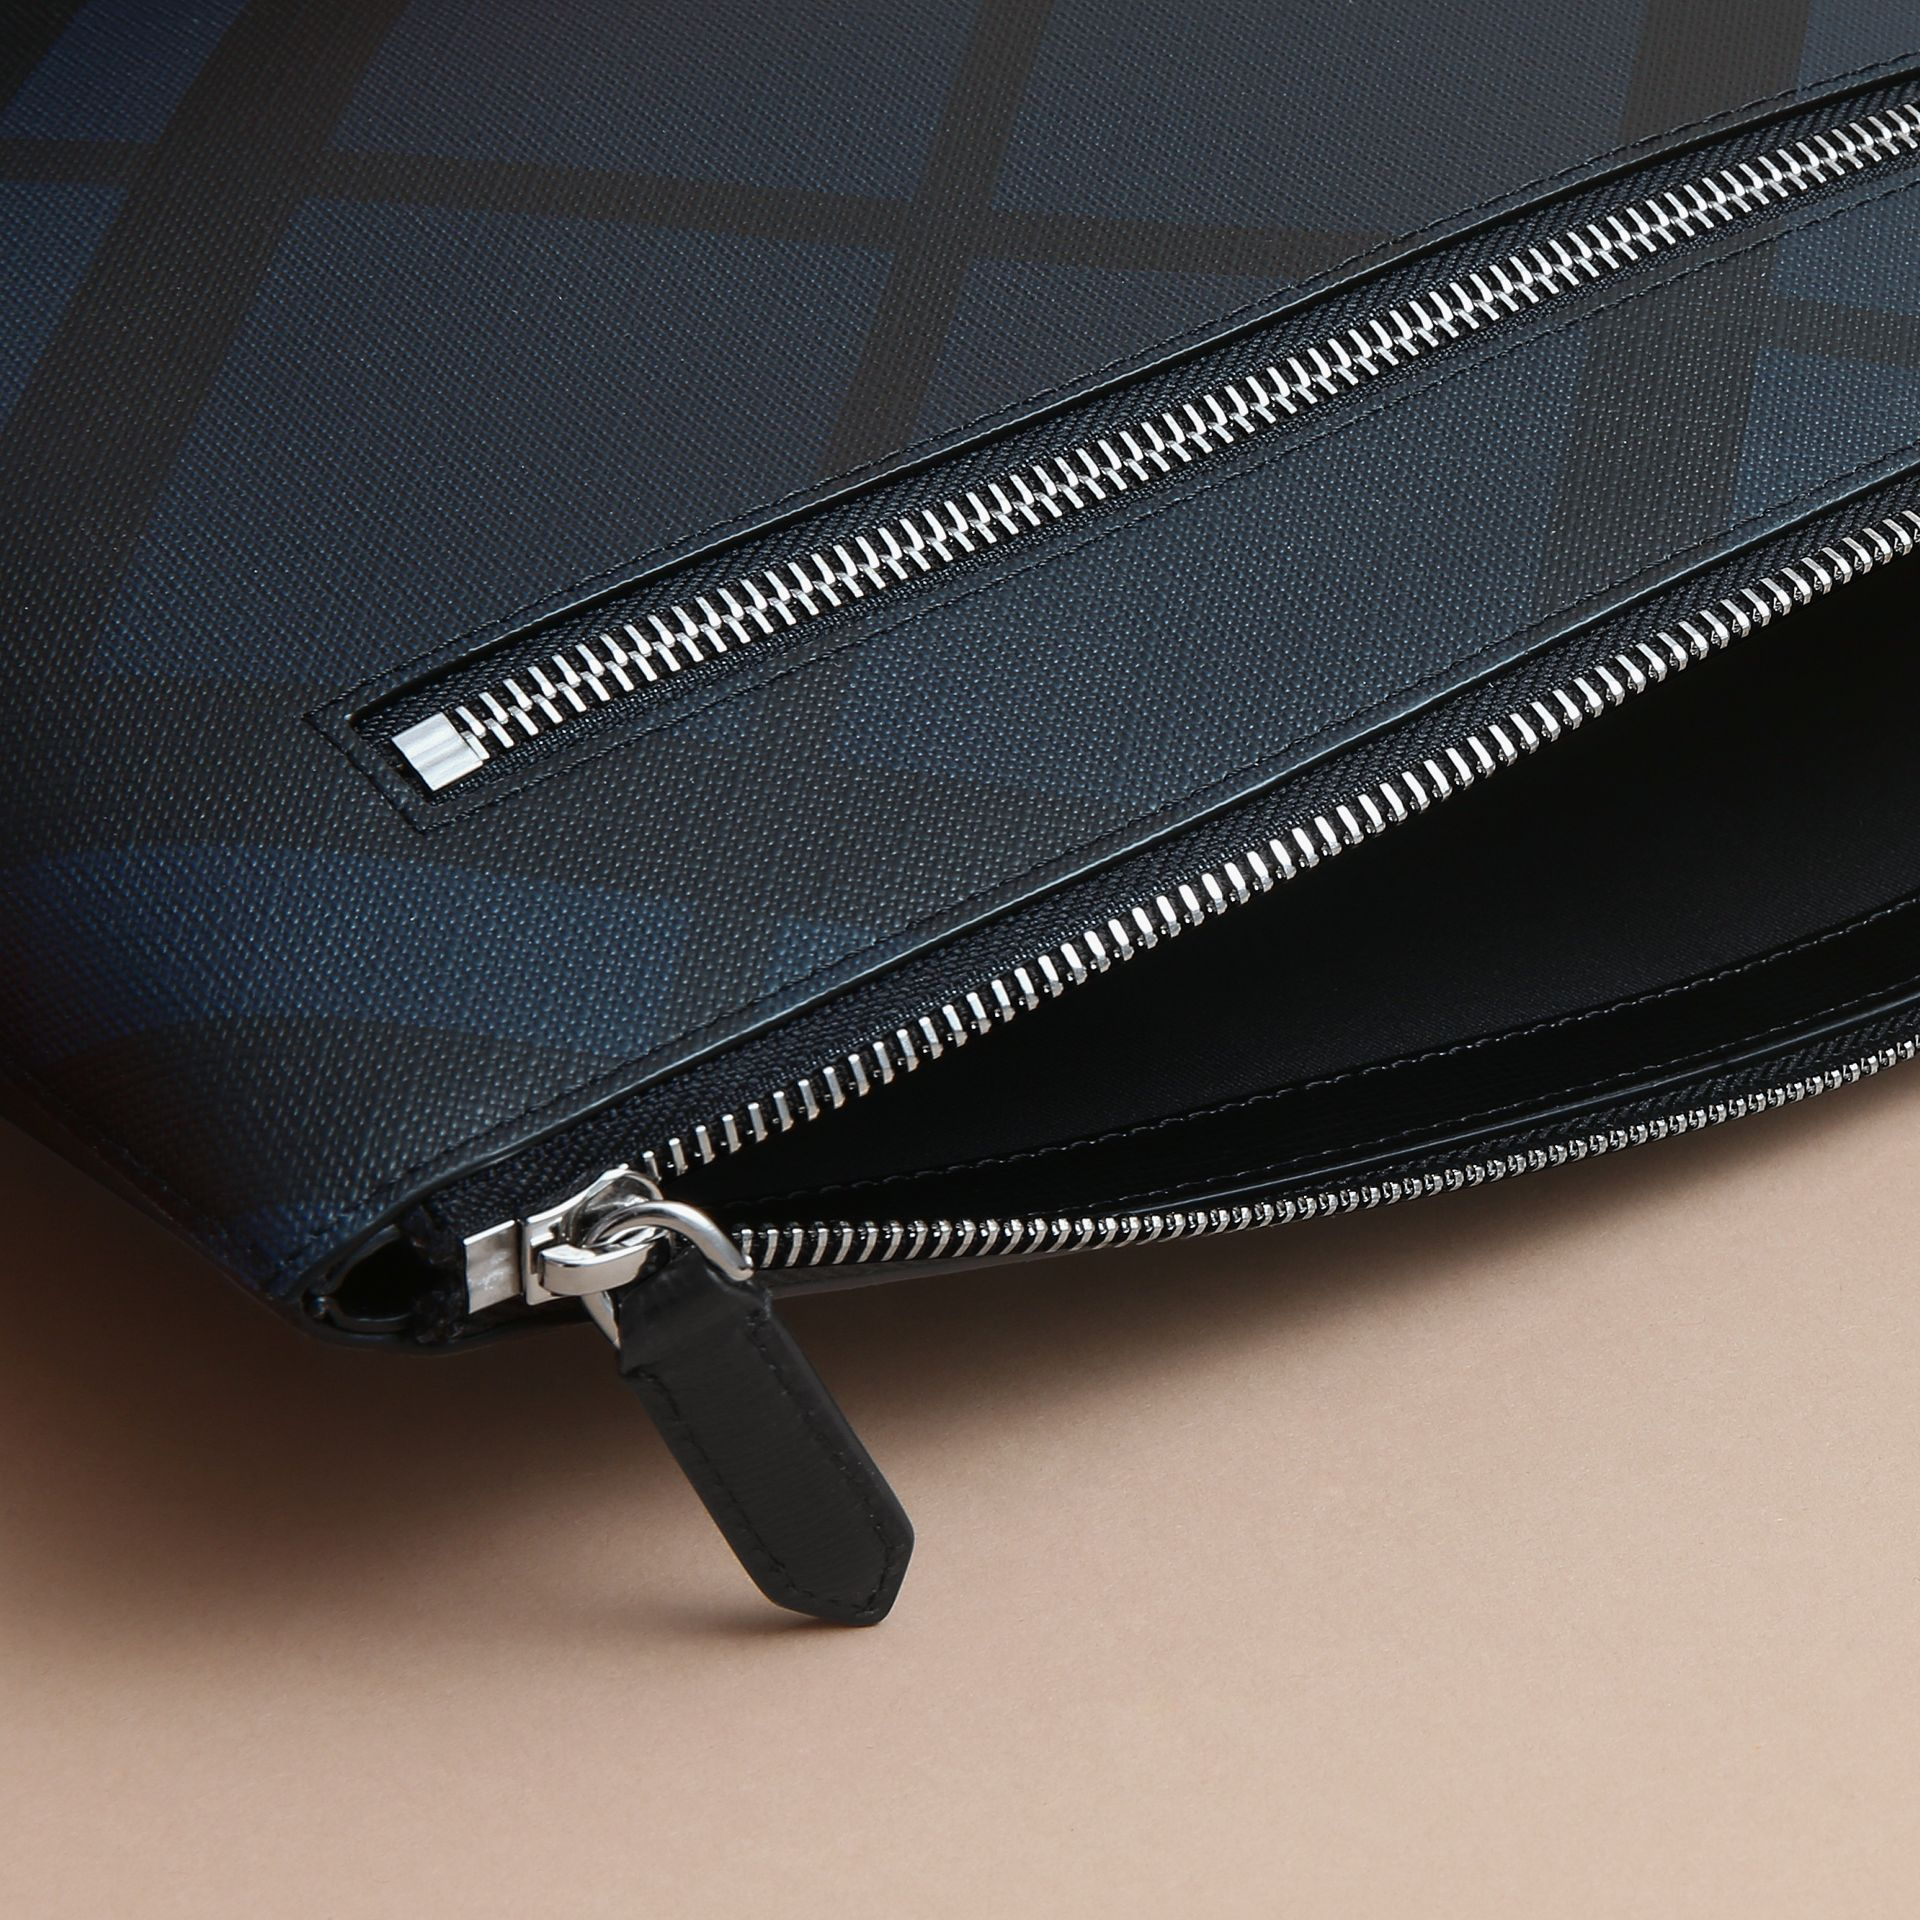 Large London Check Zip Pouch in Navy/black - Men | Burberry - gallery image 5